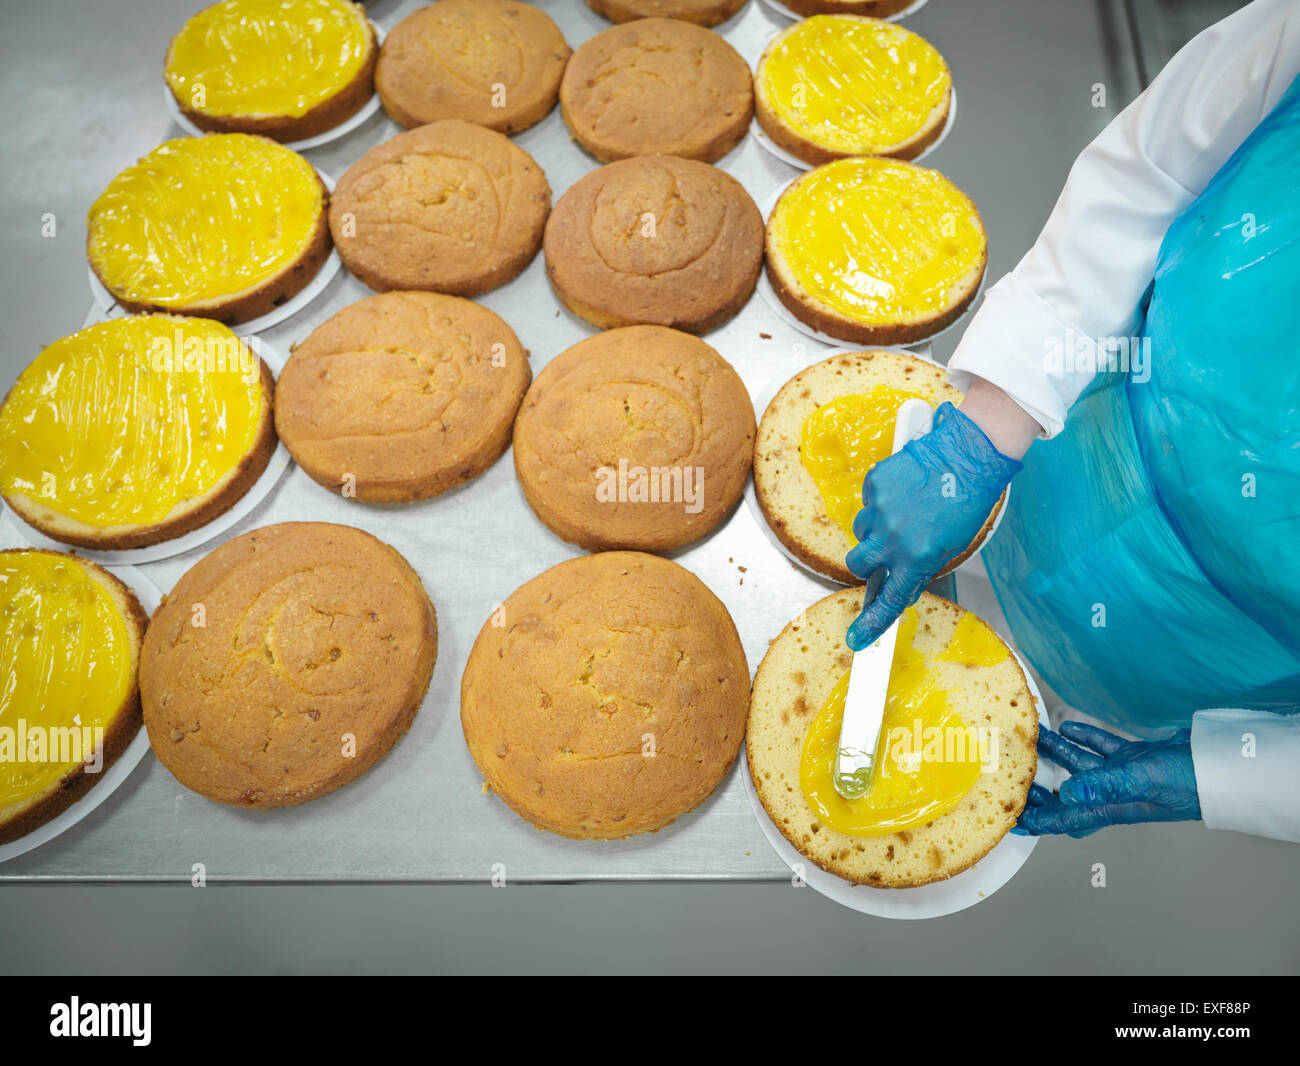 Female worker spreading filling on cakes in cake factory, high angle view - Stock Image